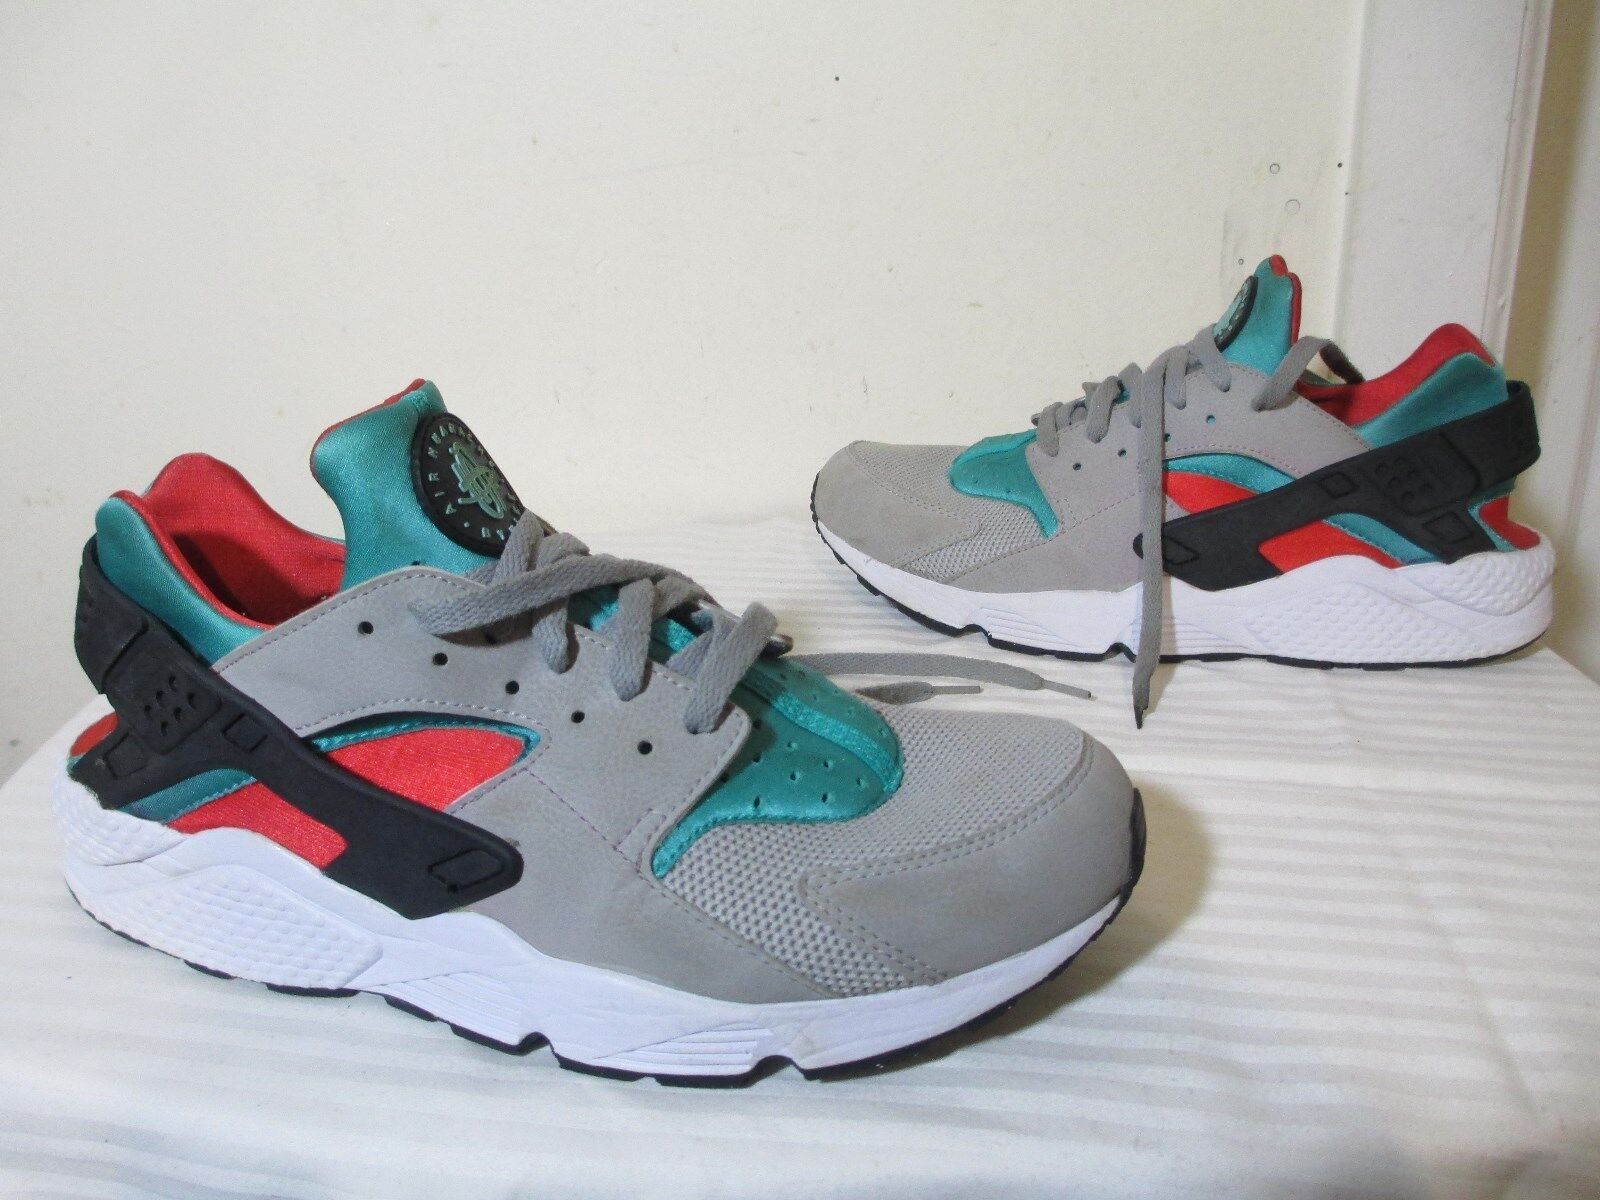 NIKE AIR HUARACHE 318429-023 MEN LIFESTYLE MULTICOLOR FLAT CASUAL SNEAKERS SZ 13